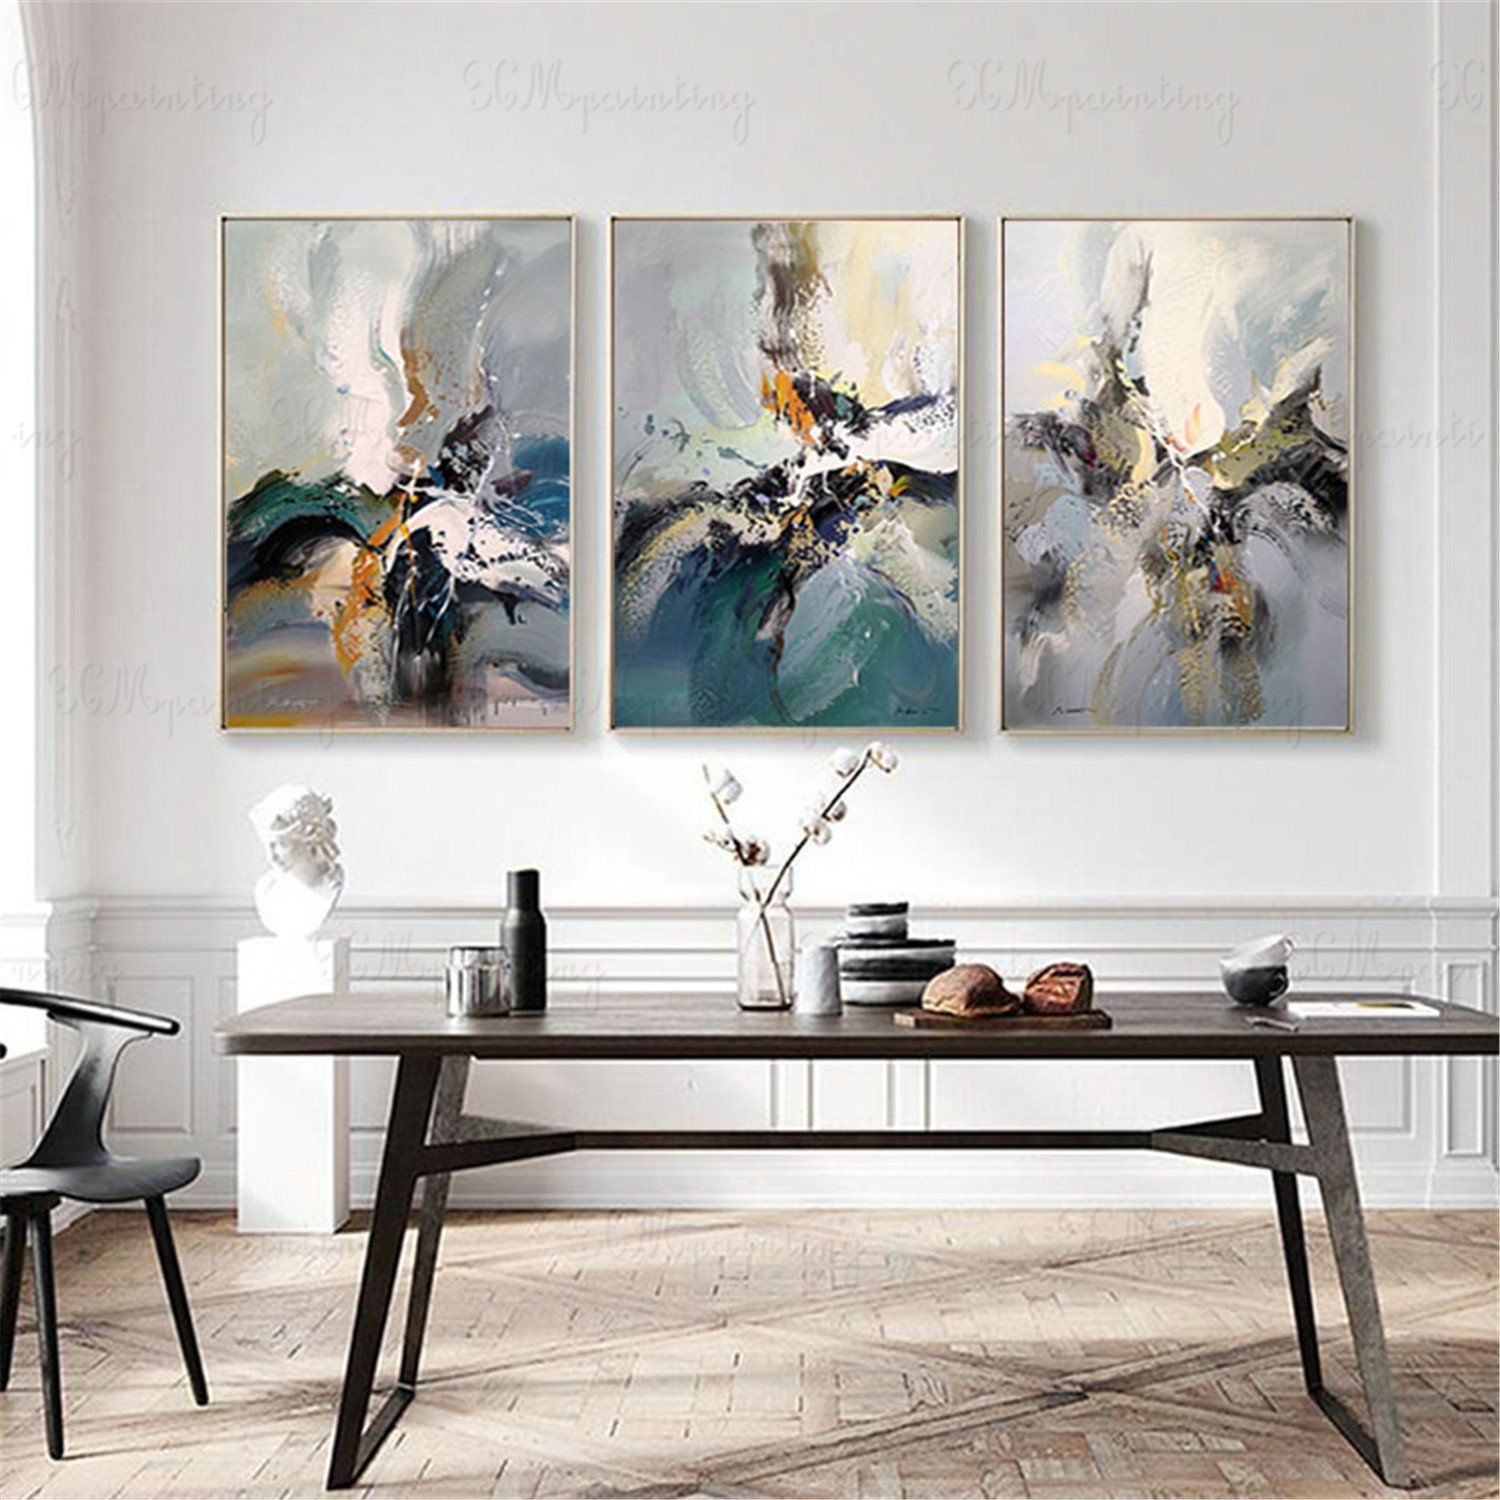 3 Pieces Original Abstract Painting On Canvas Wall Art Pictures